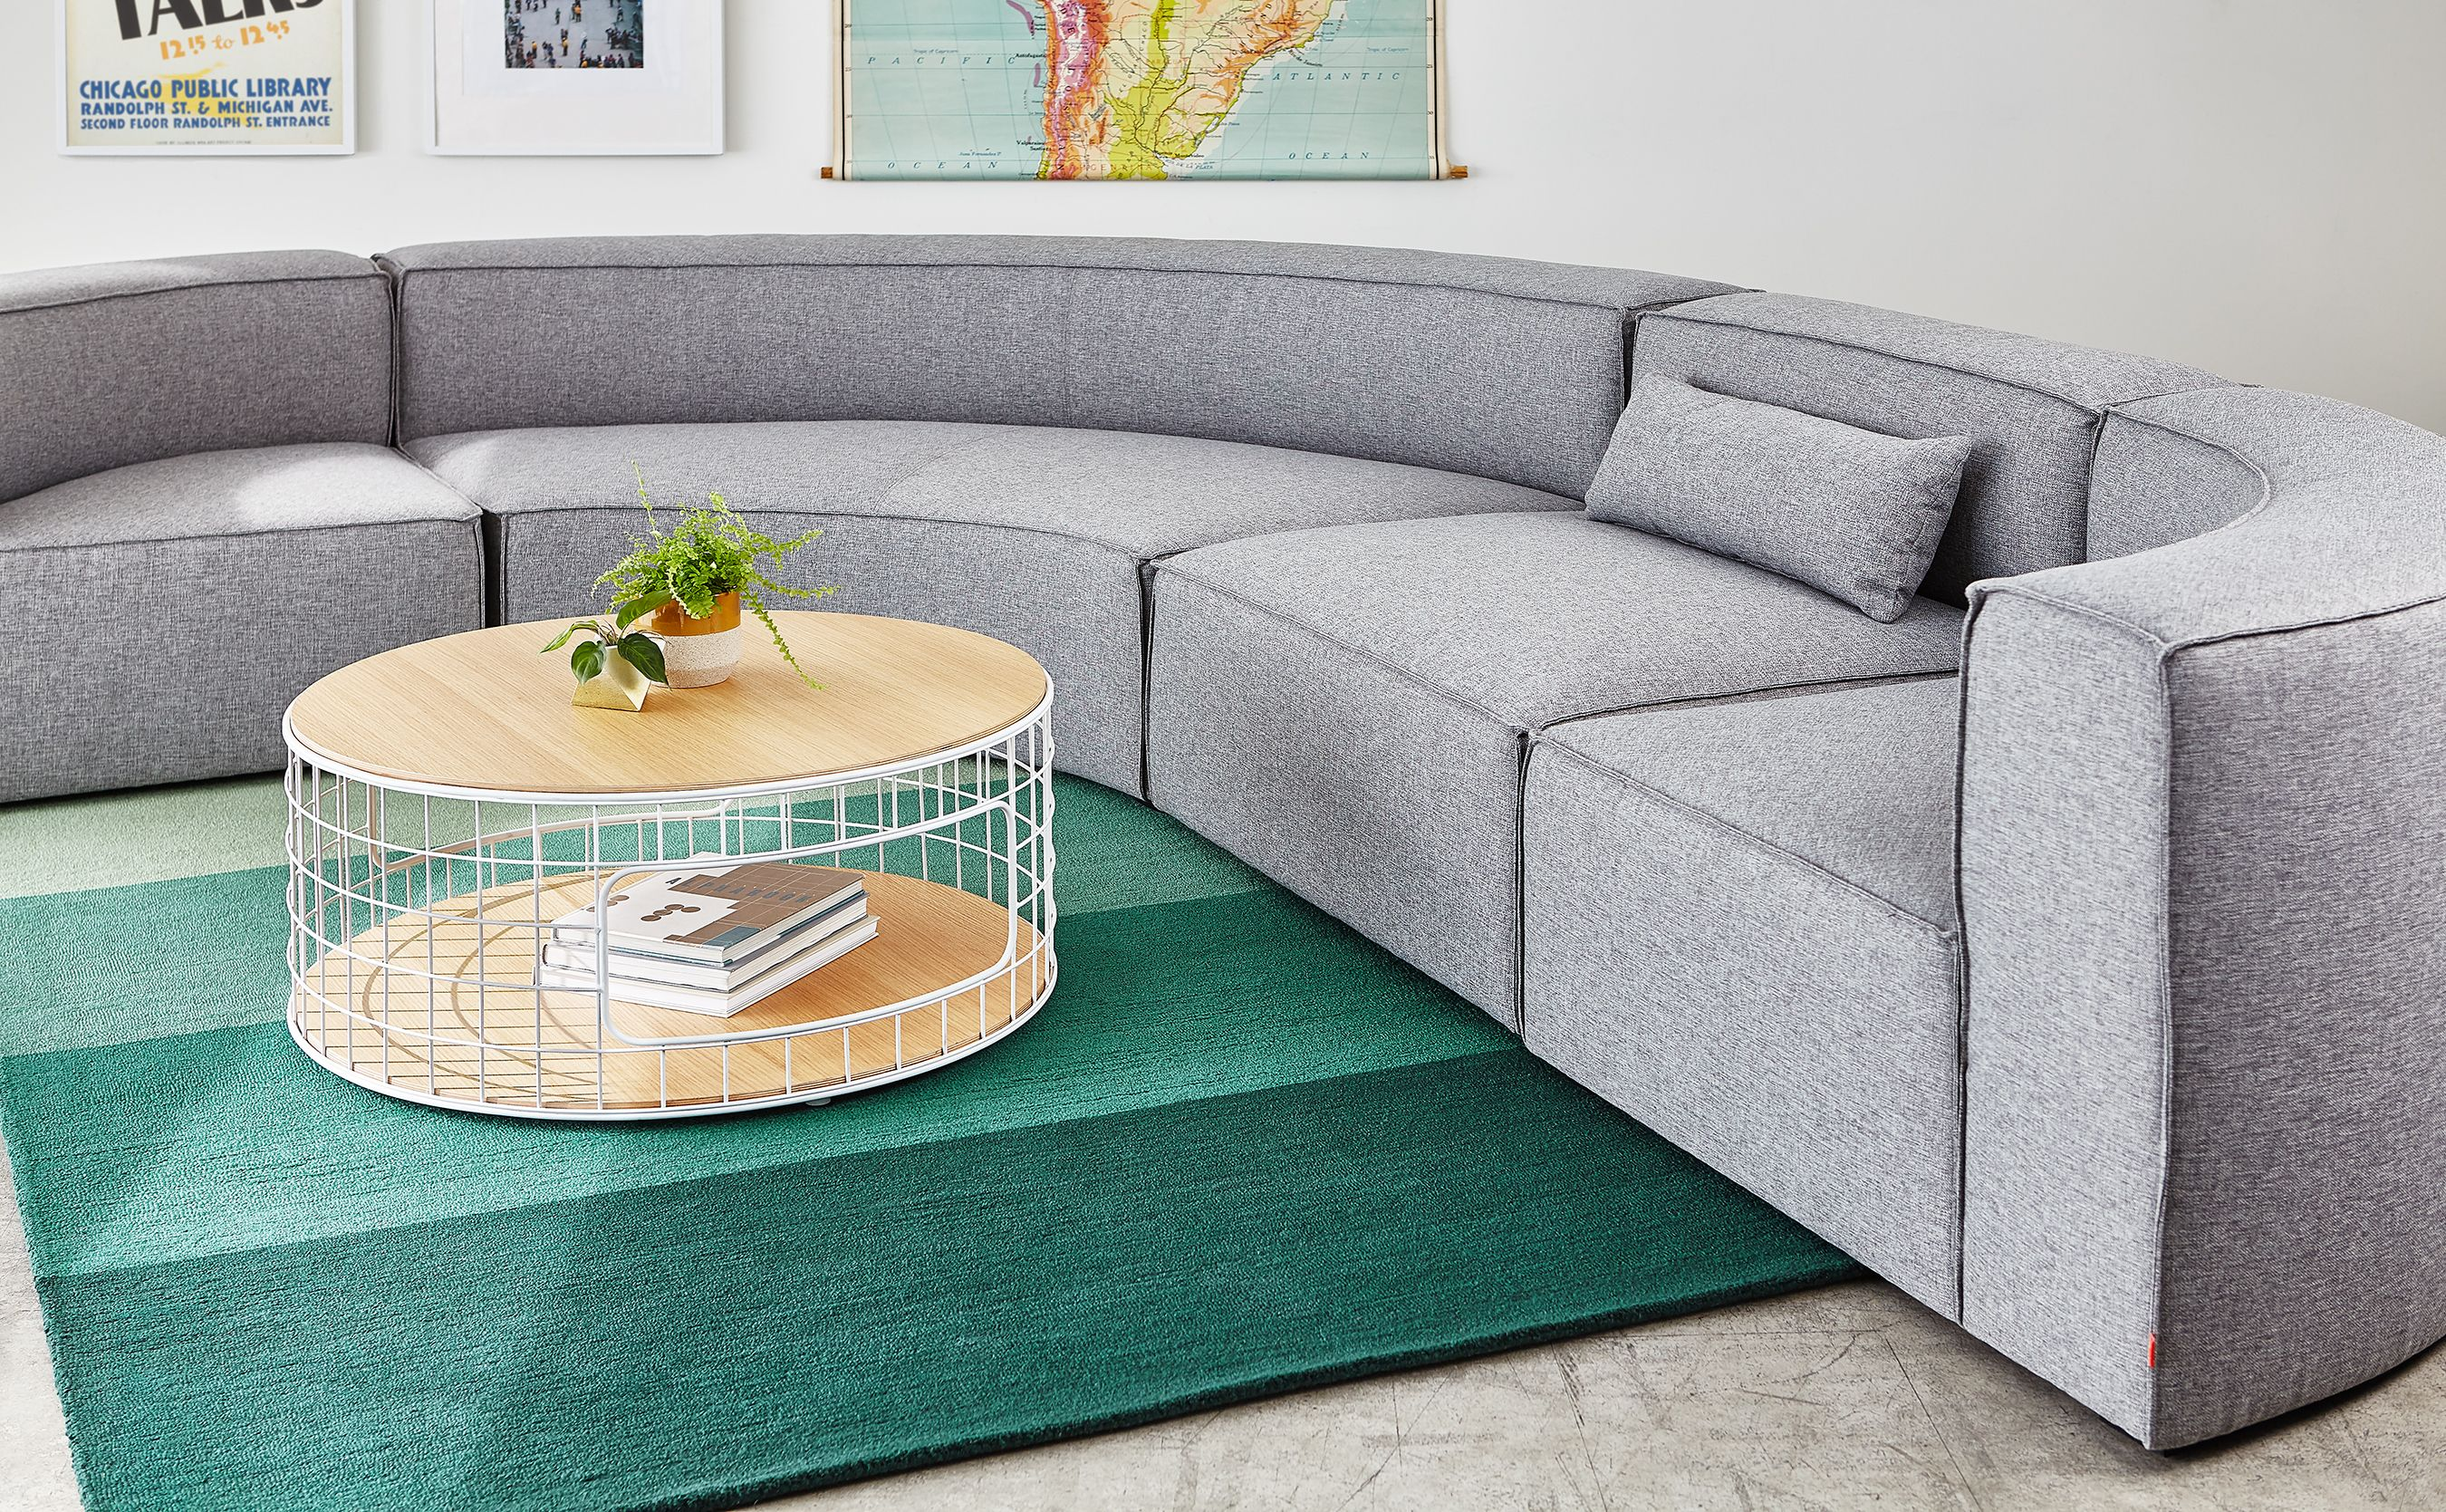 Unglaublich Boreal Haus Beste Wahl Mix Modular Sectional, Wireframe Coffee Table &